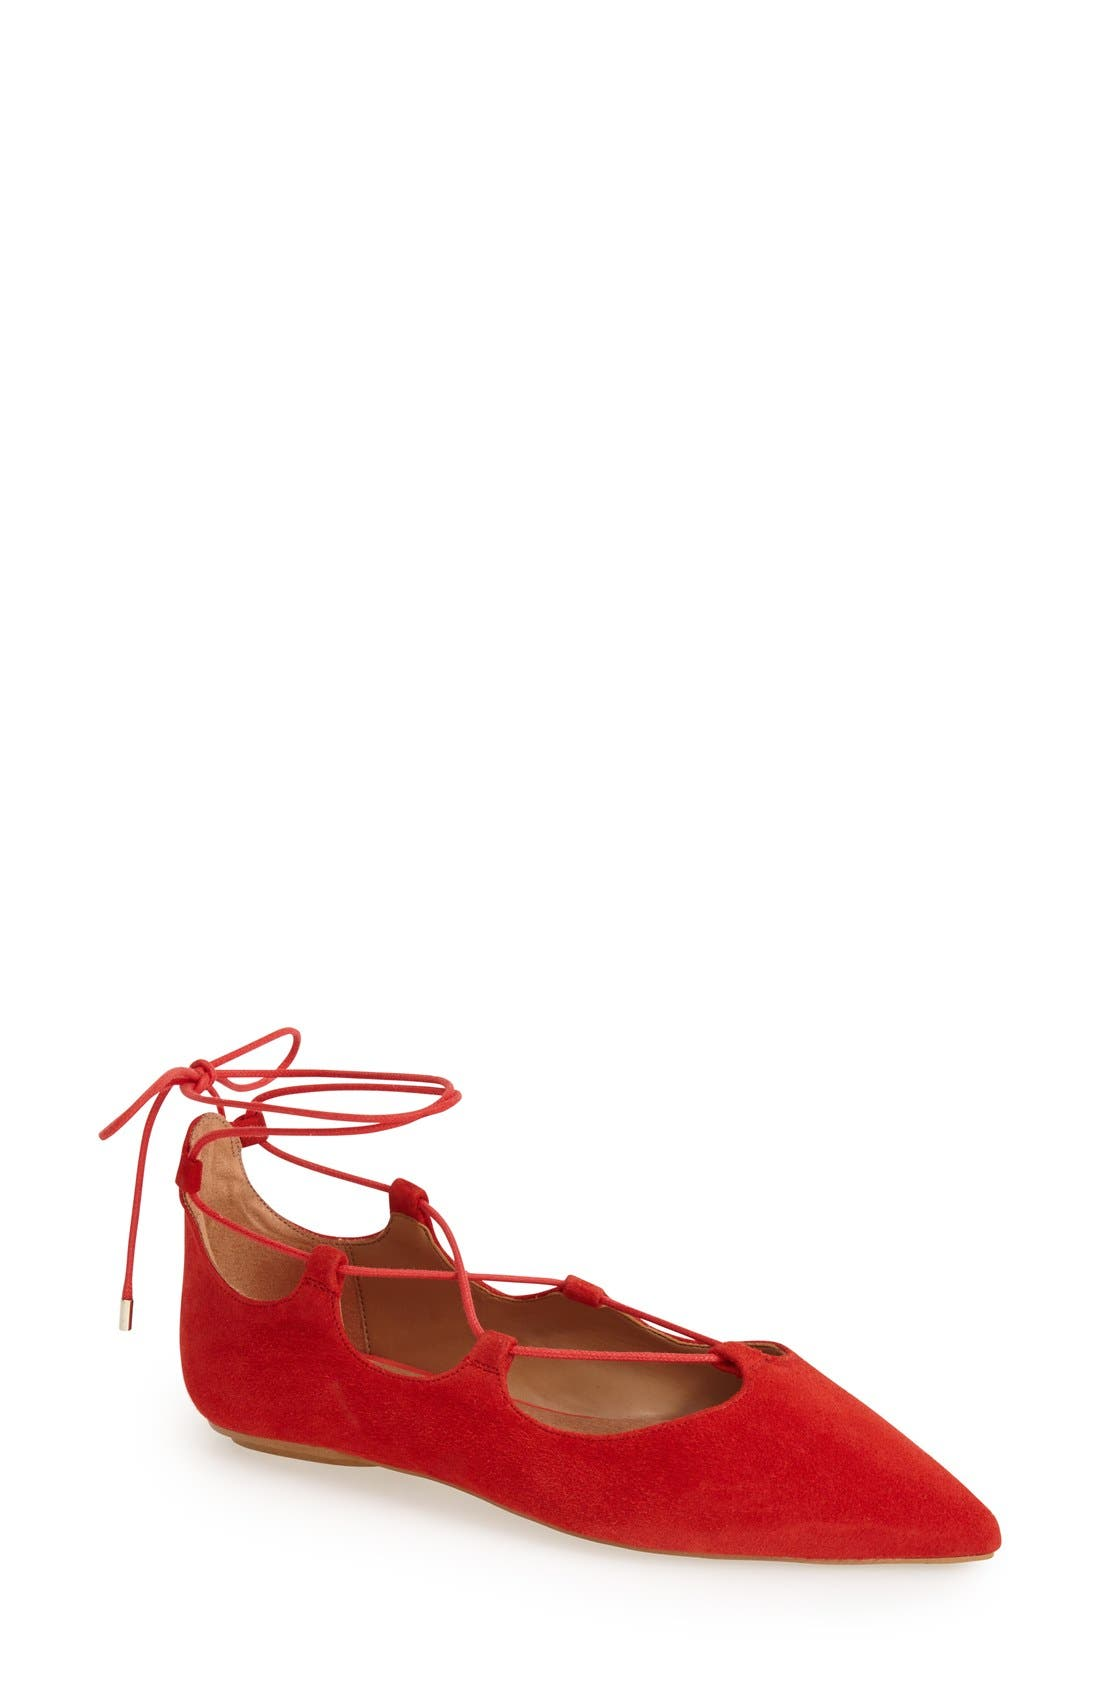 Alternate Image 1 Selected - Topshop 'Leather Kingdom' Pointy Toe Flat (Women)